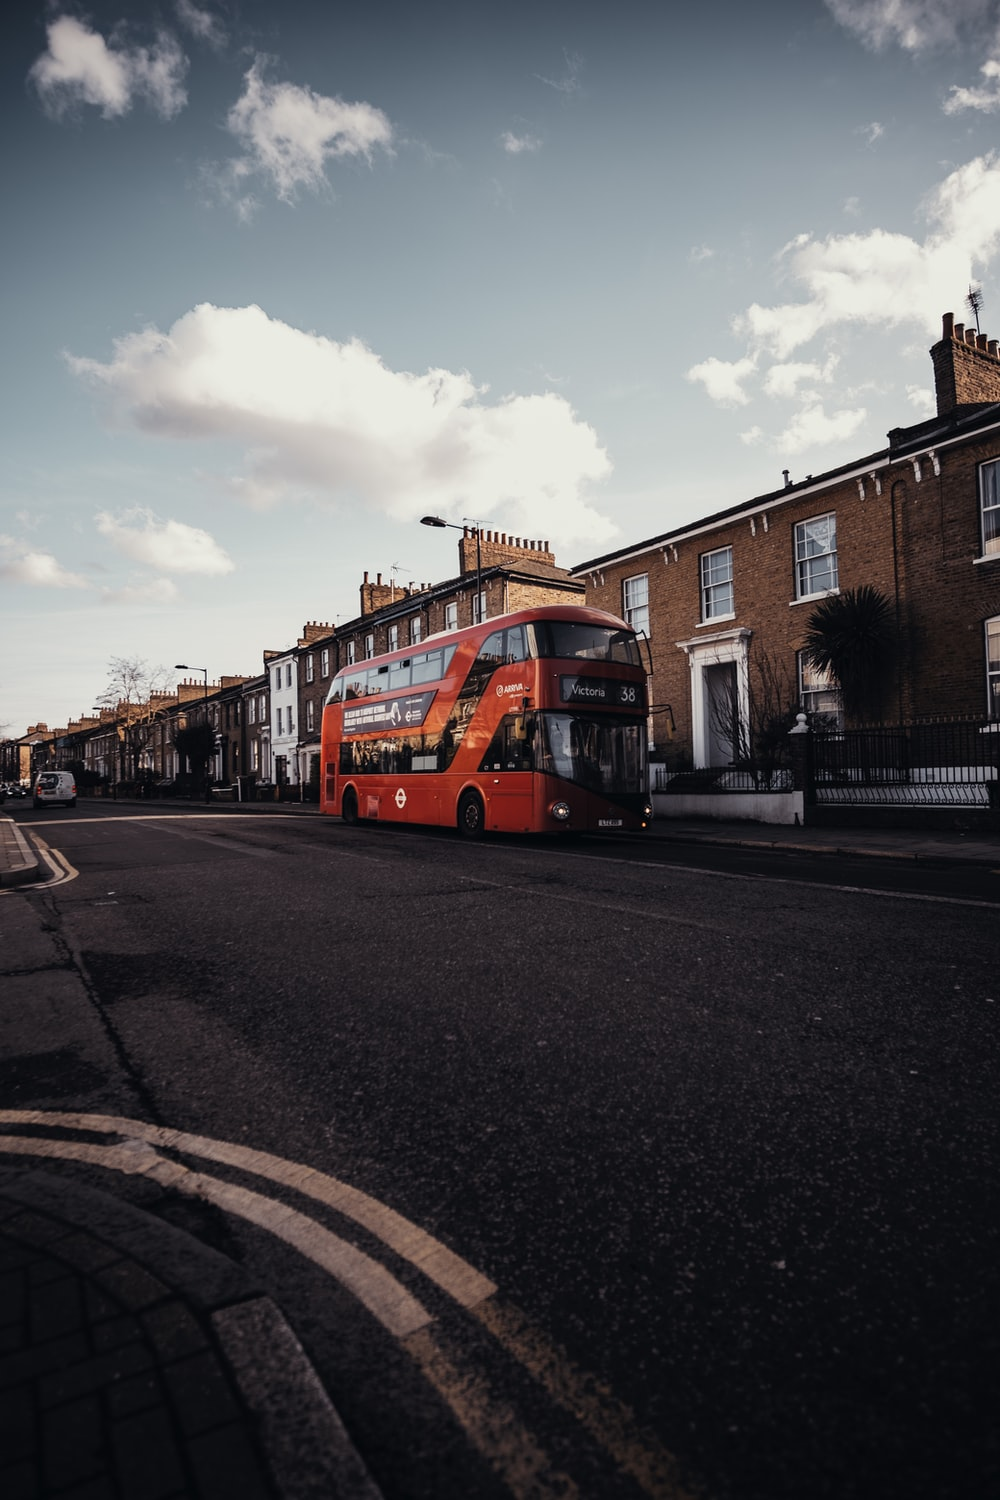 red bus on road near building during daytime